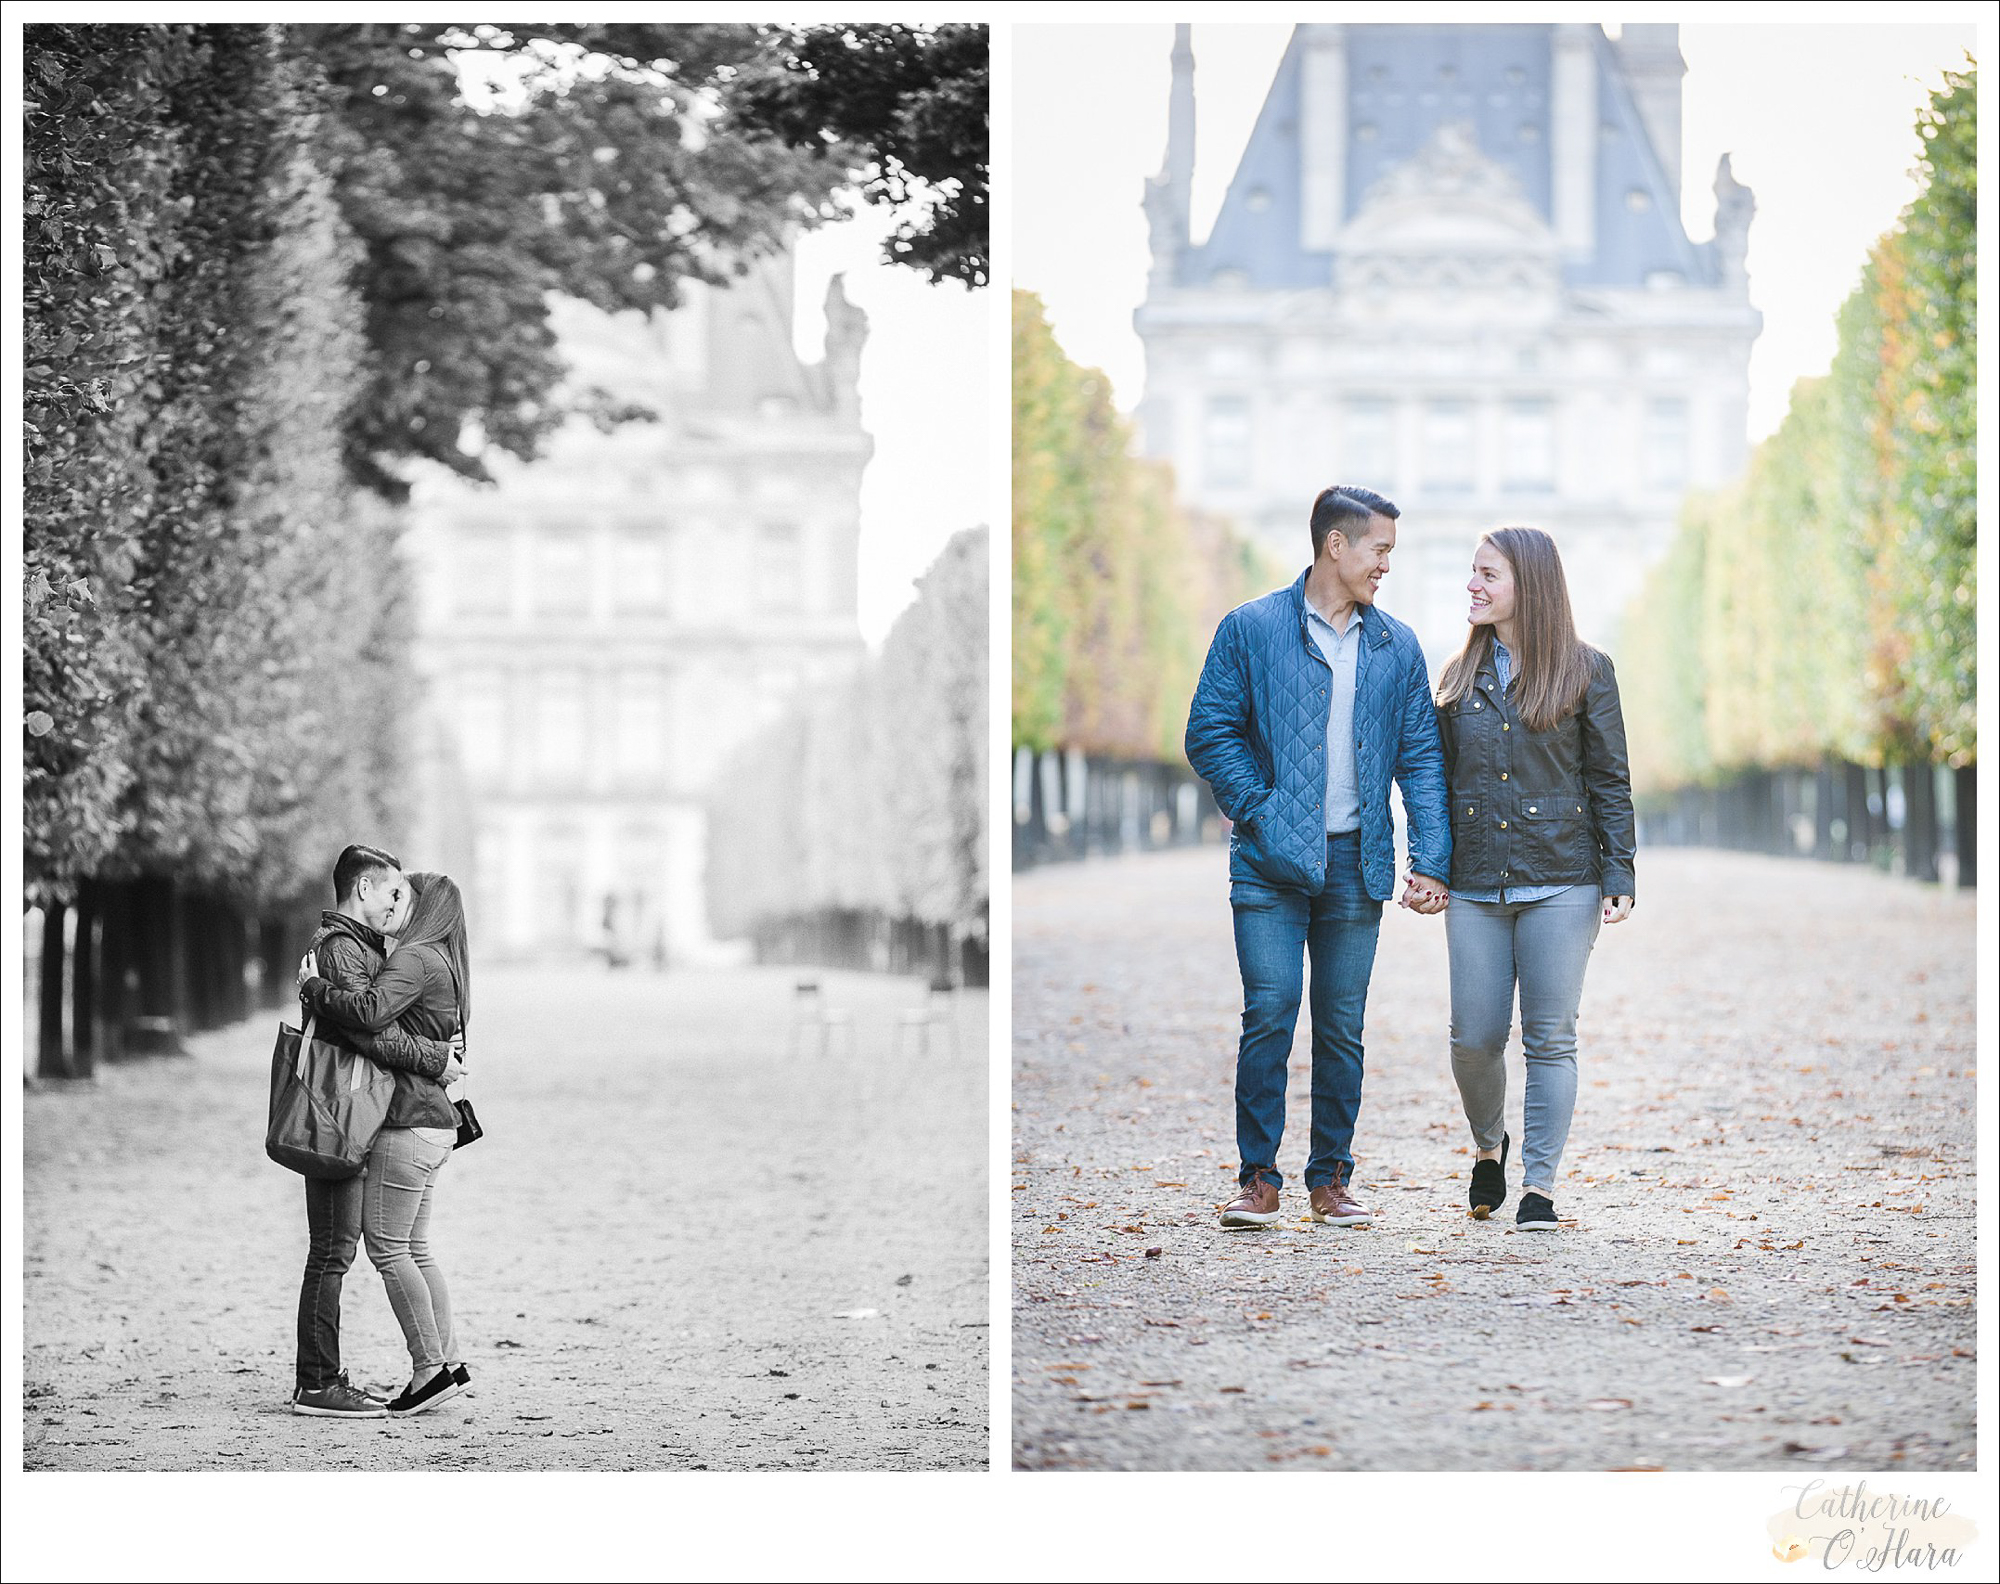 surprise proposal engagement photographer paris france-25.jpg